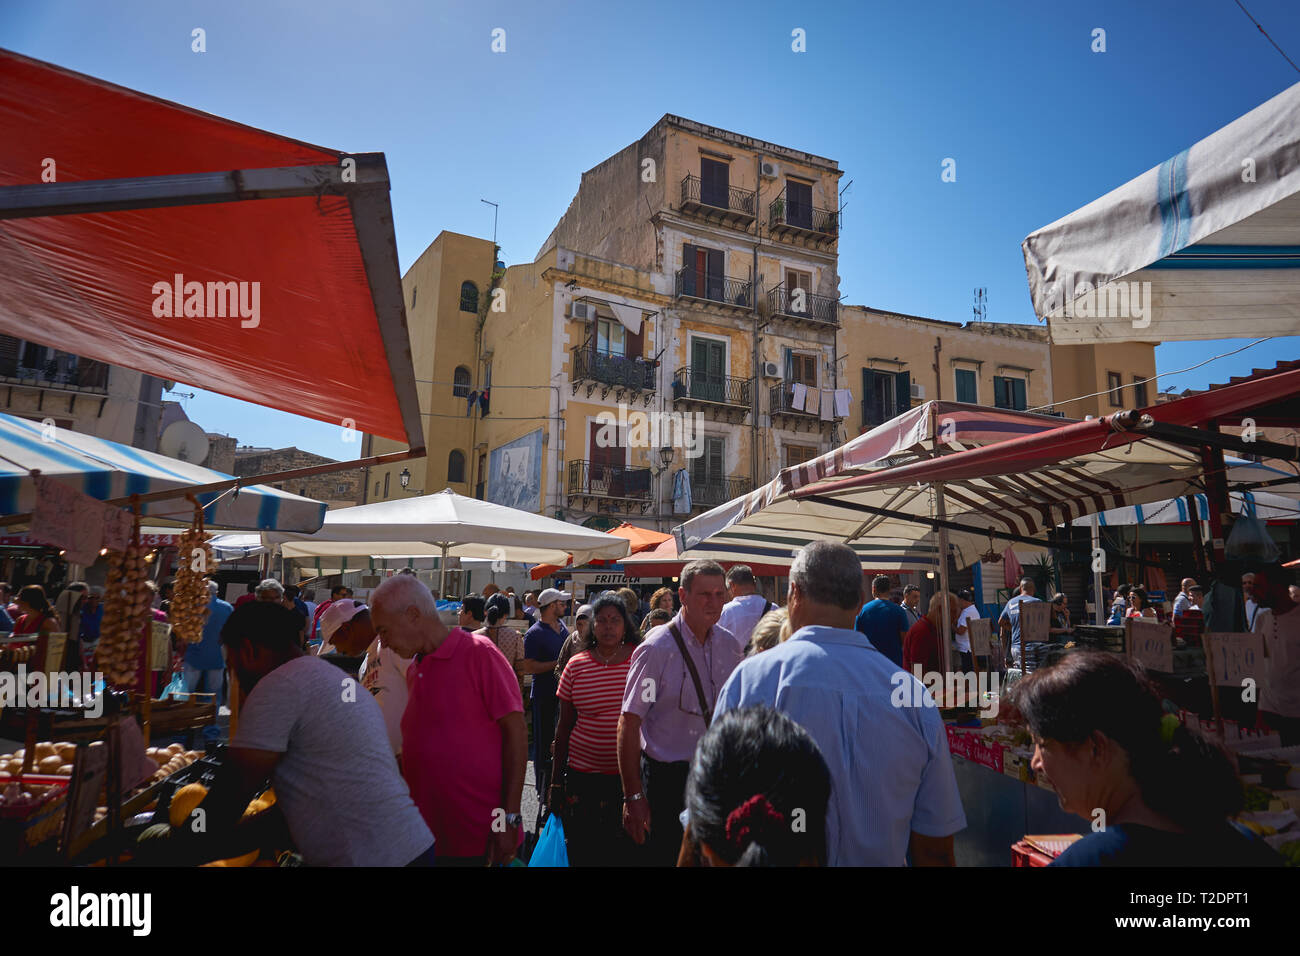 Palermo, Italy - September. 2018. Seafood and vegetable stalls in the Ballarò Market, the oldest food market in Palermo. Stock Photo